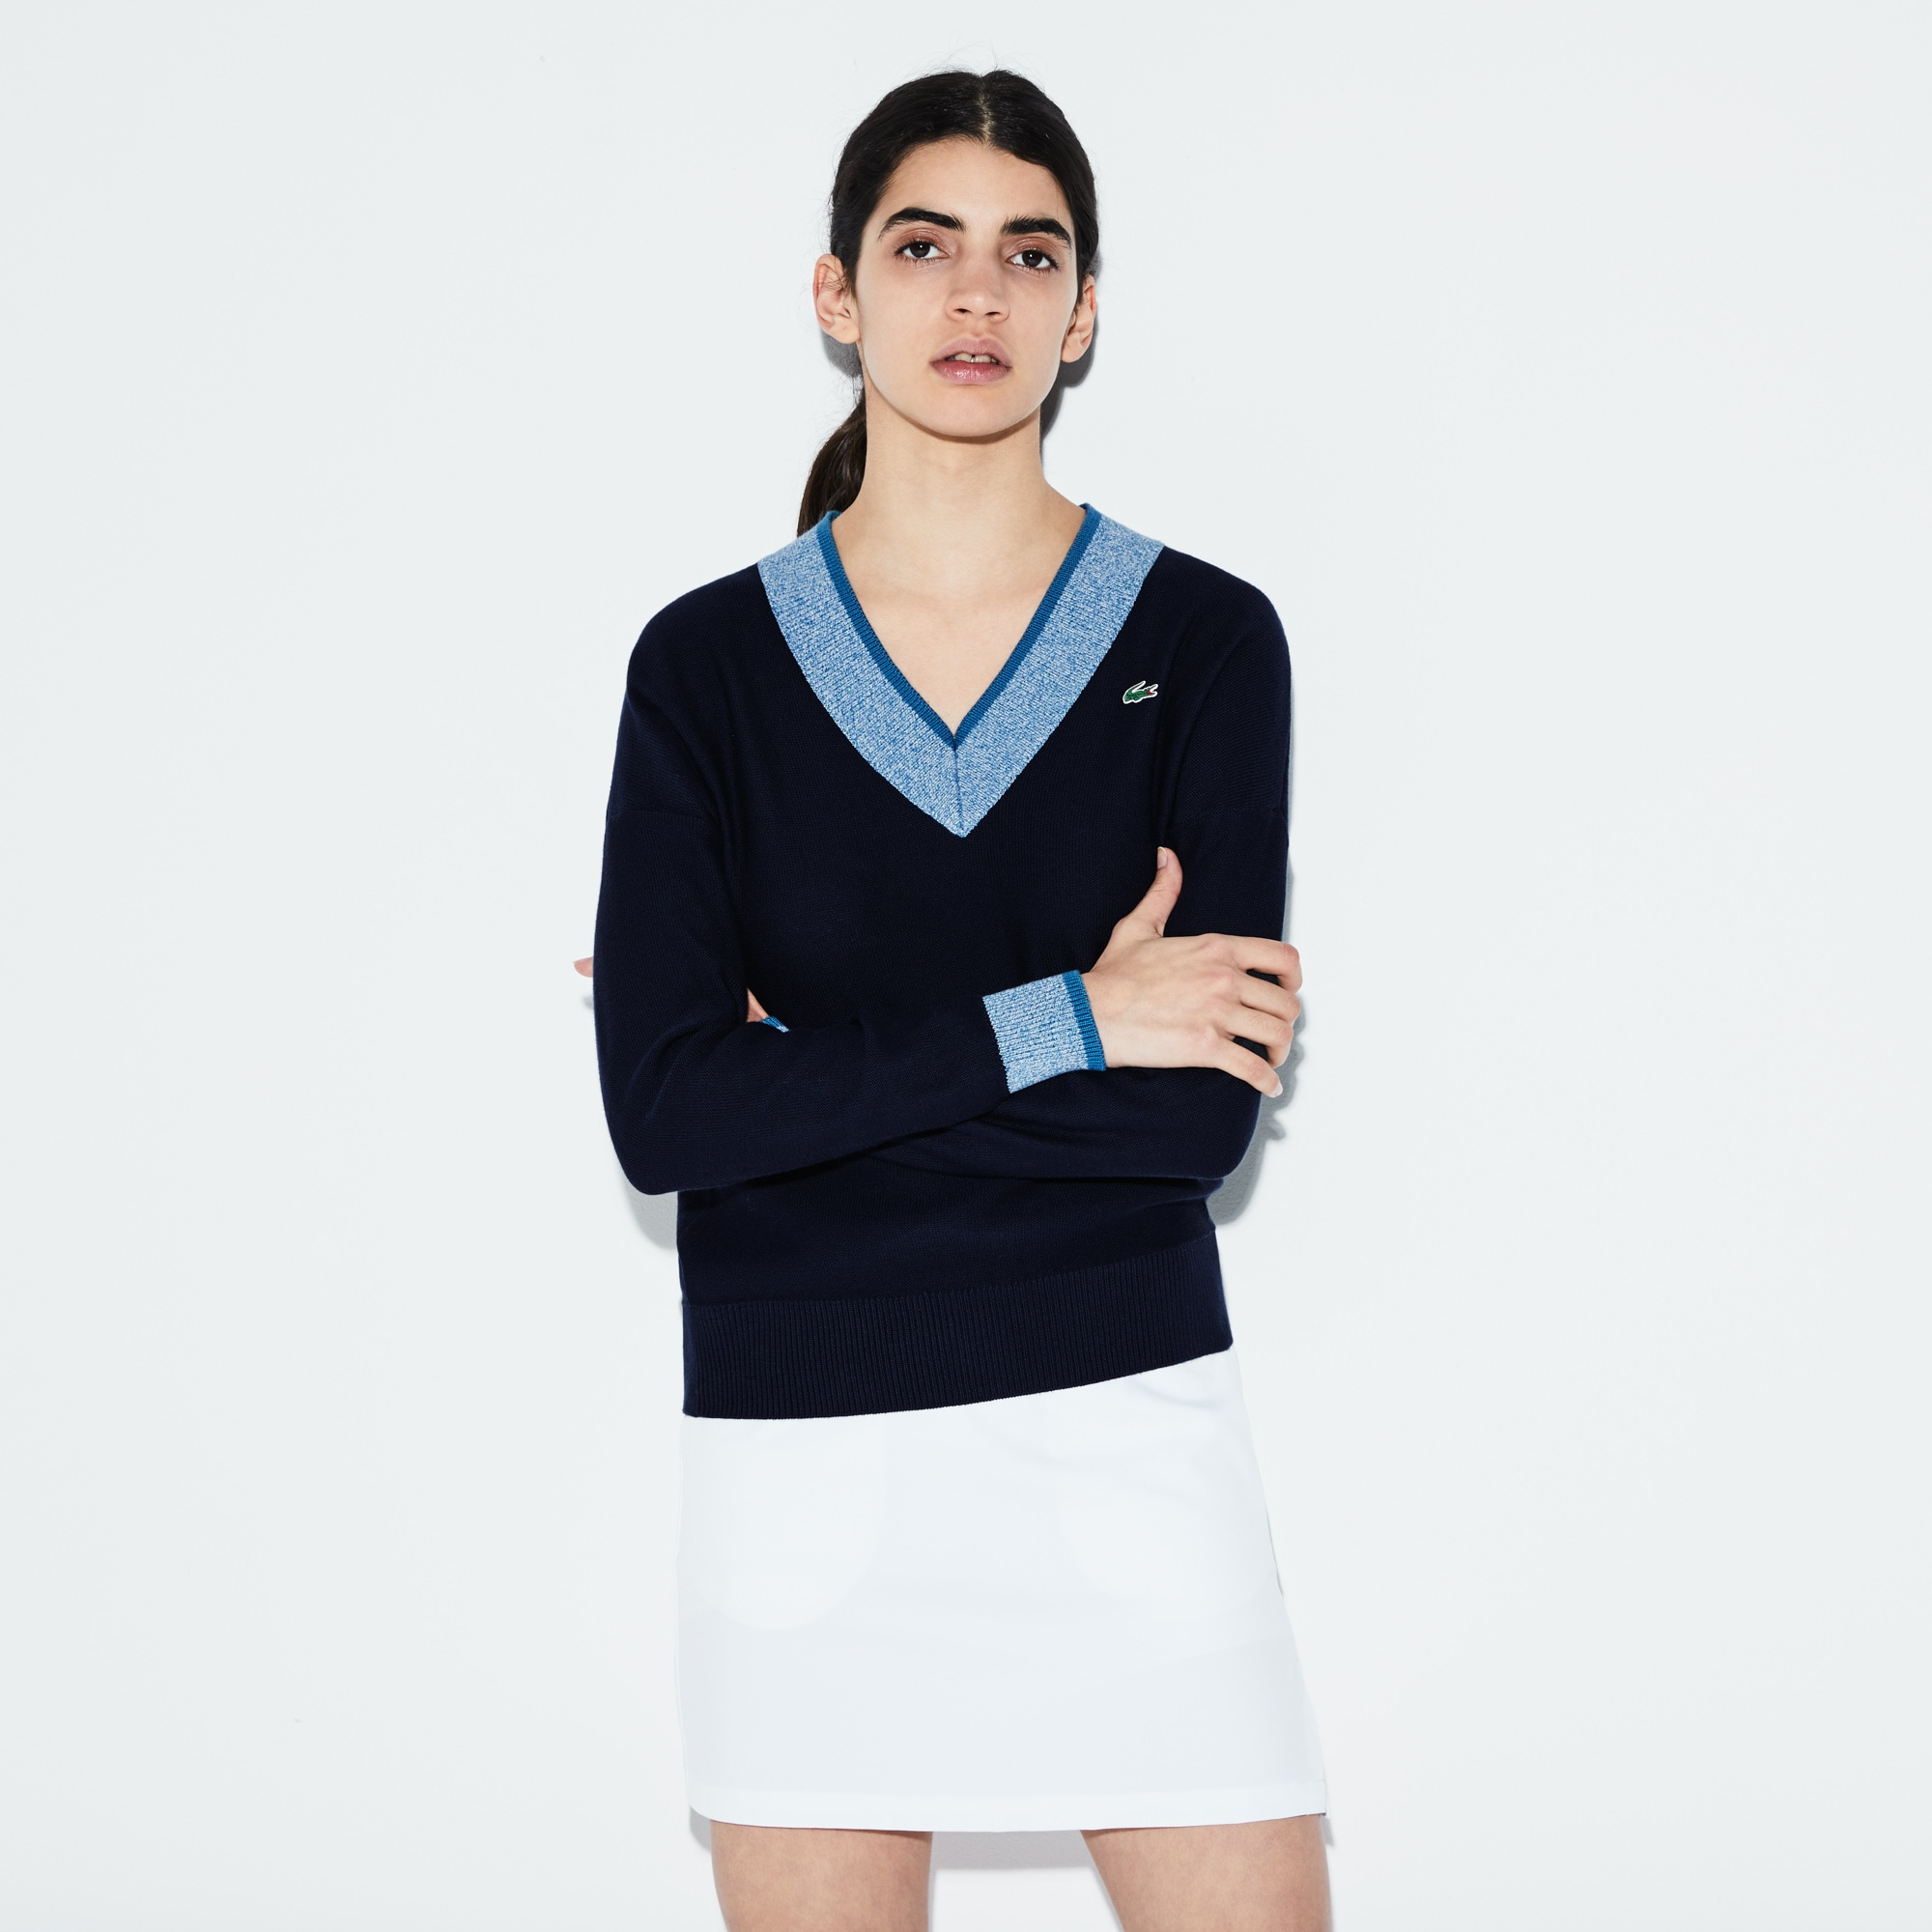 Women's Lacoste SPORT V-neck Contrast Finish Jersey Golf Sweater